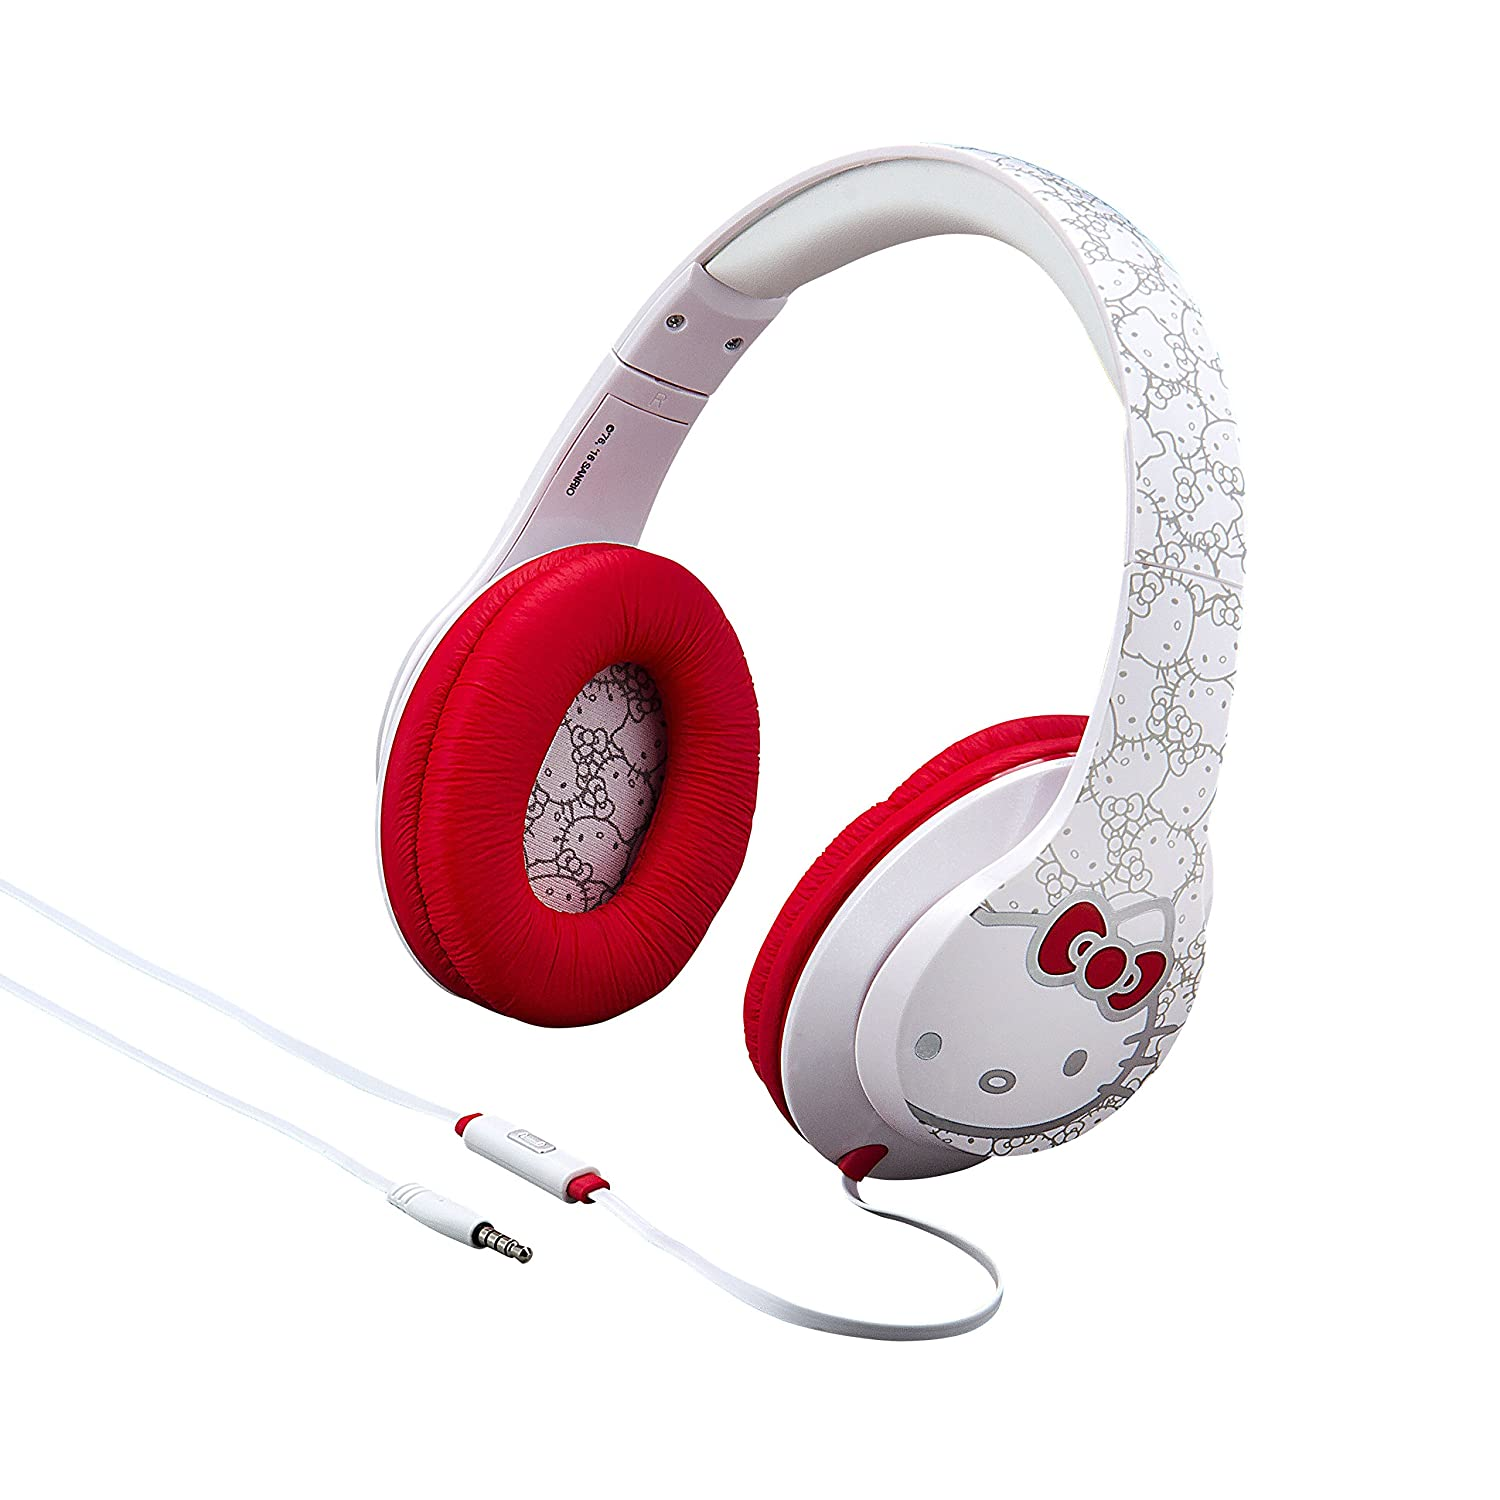 Hello Kitty Over The Ear Headphones with Built in in-line Microphone for Call answering